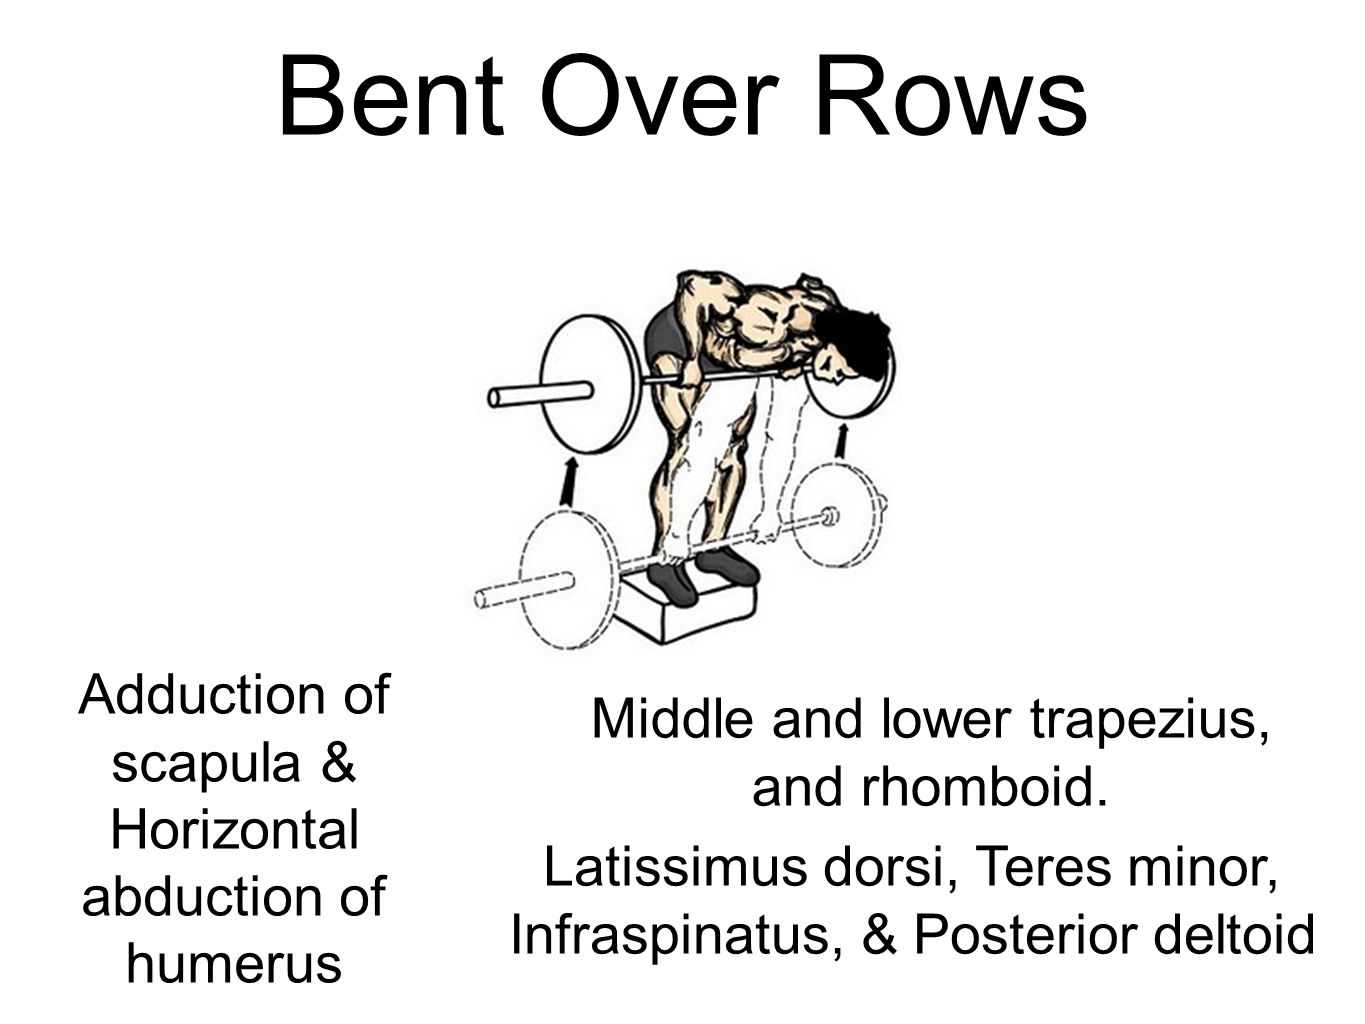 Bent Over Rows Middle and lower trapezius, and rhomboid. Adduction of scapula & Horizontal abduction of humerus Latissimus dorsi, Teres minor, Infrasp